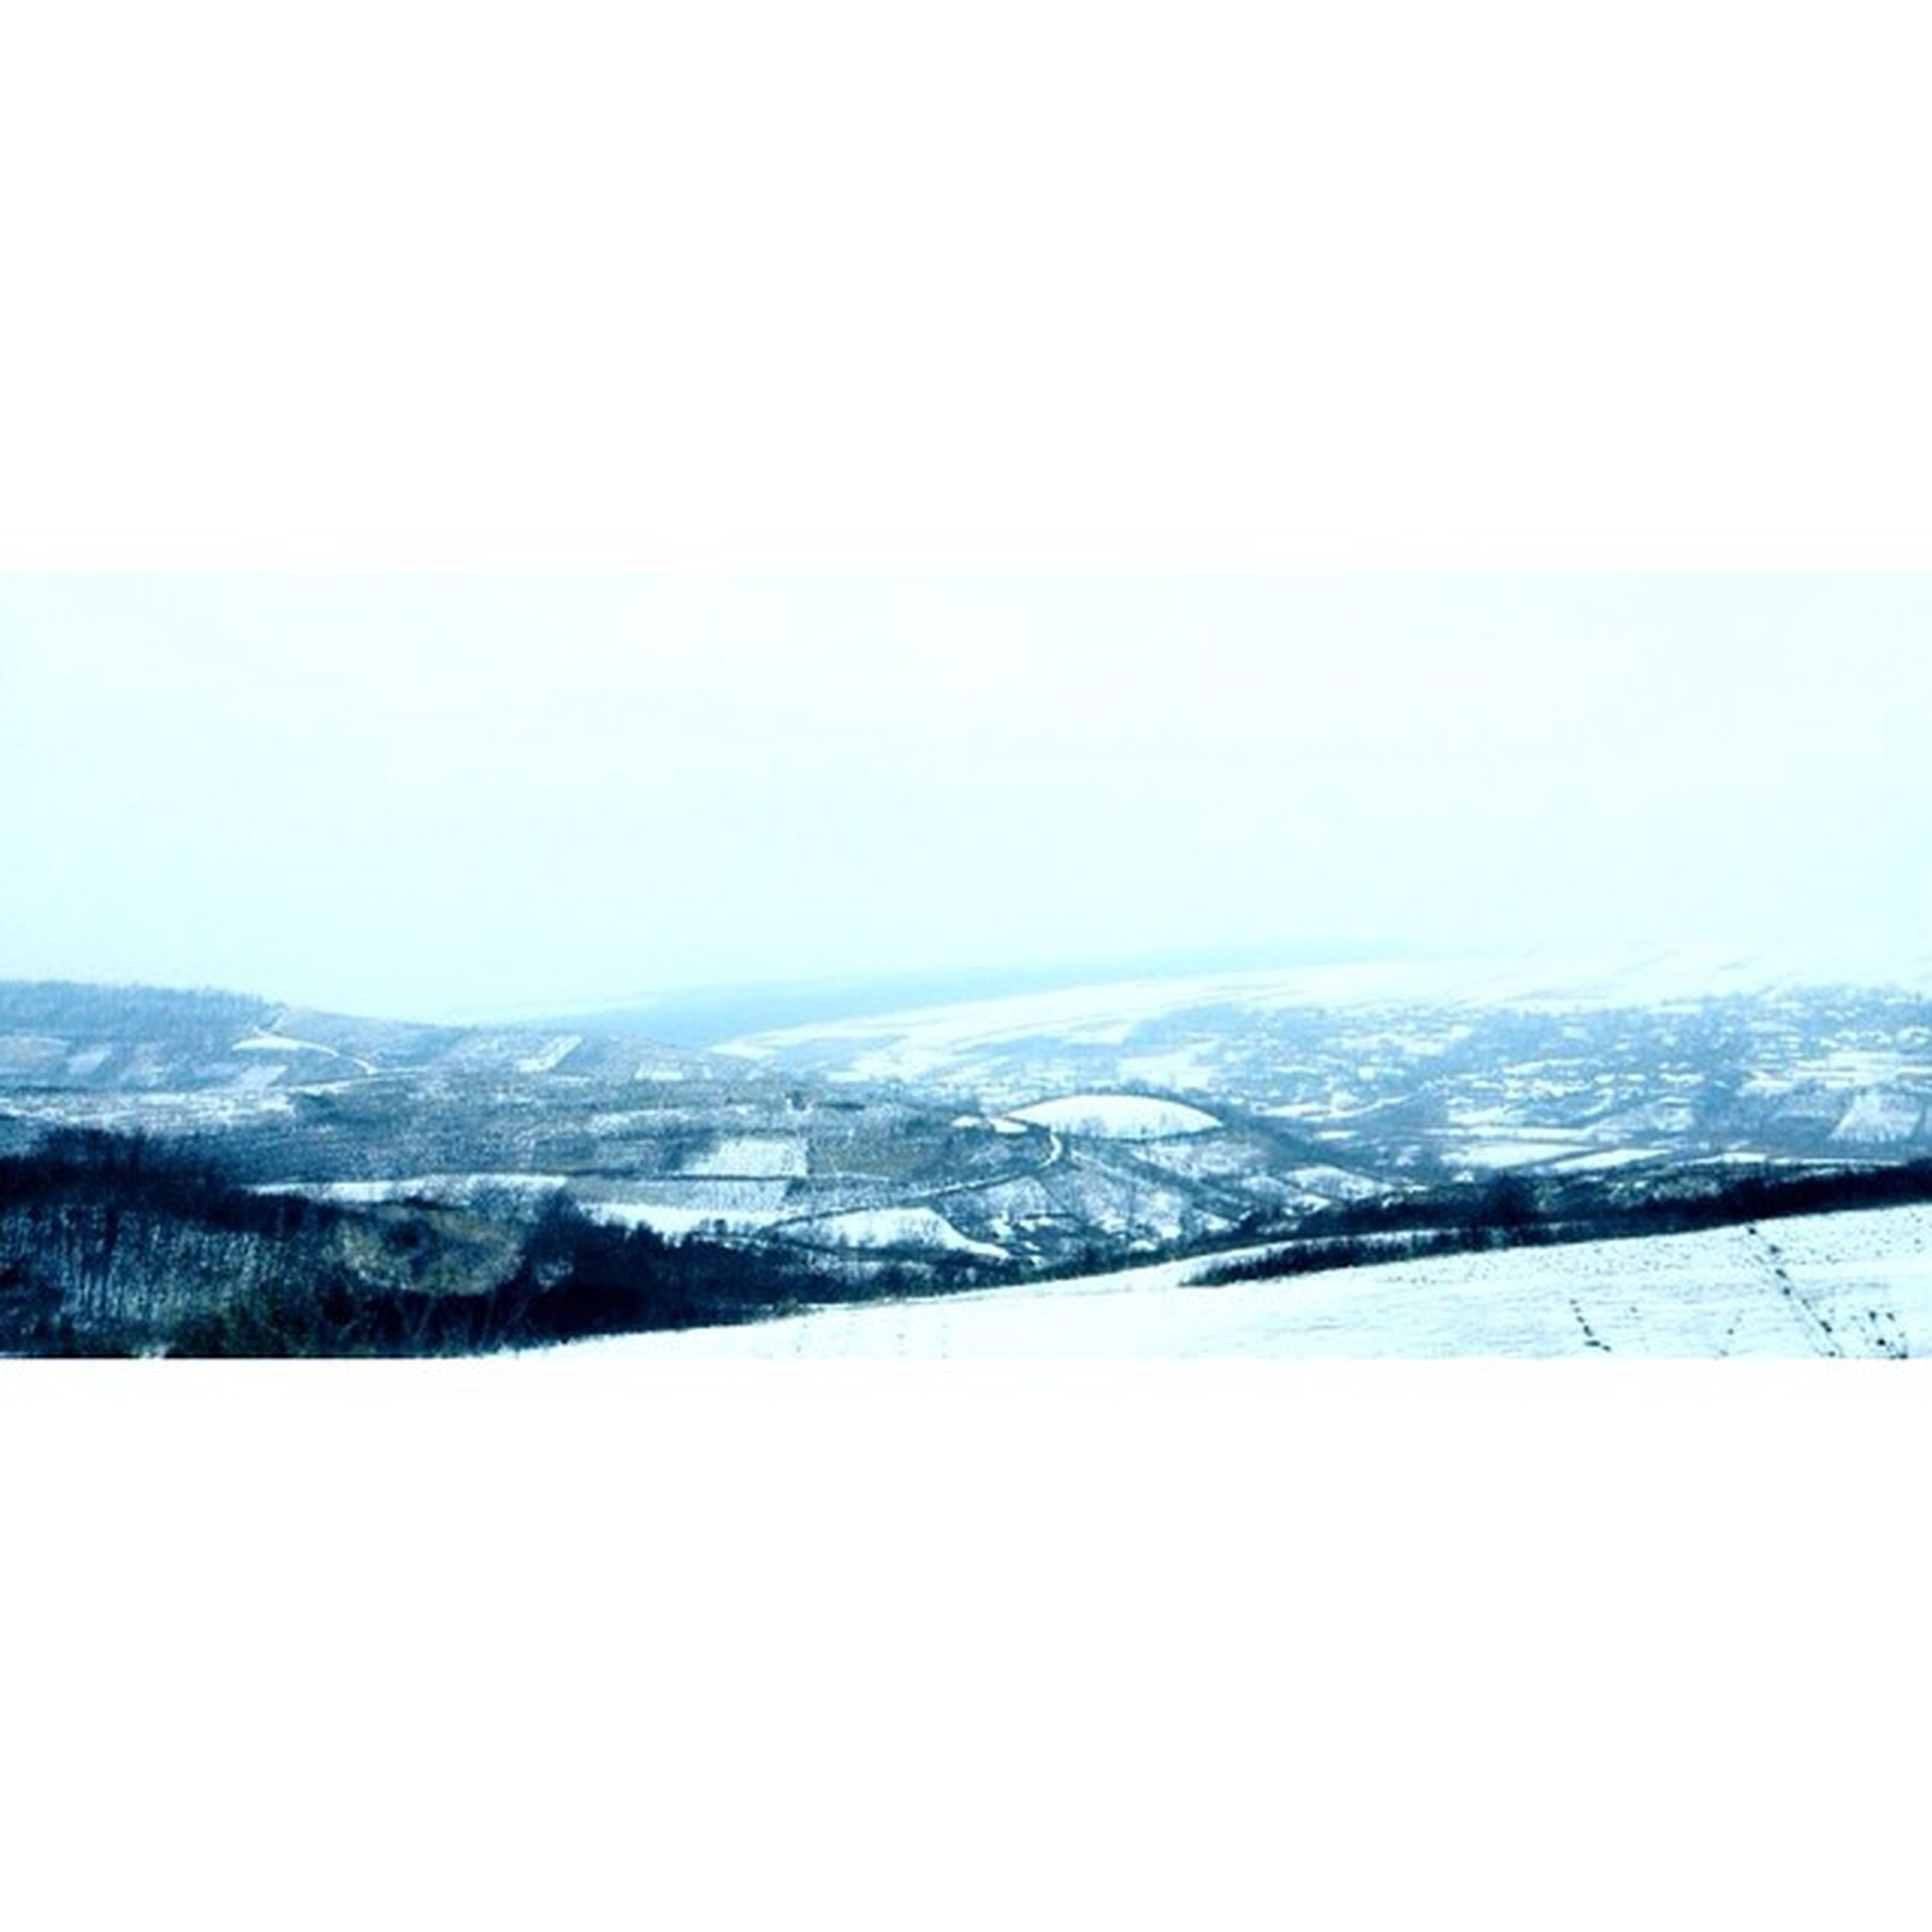 winter, snow, cold temperature, copy space, season, clear sky, weather, tranquil scene, landscape, tranquility, mountain, scenics, covering, beauty in nature, nature, frozen, mountain range, white color, snow covered, snowcapped